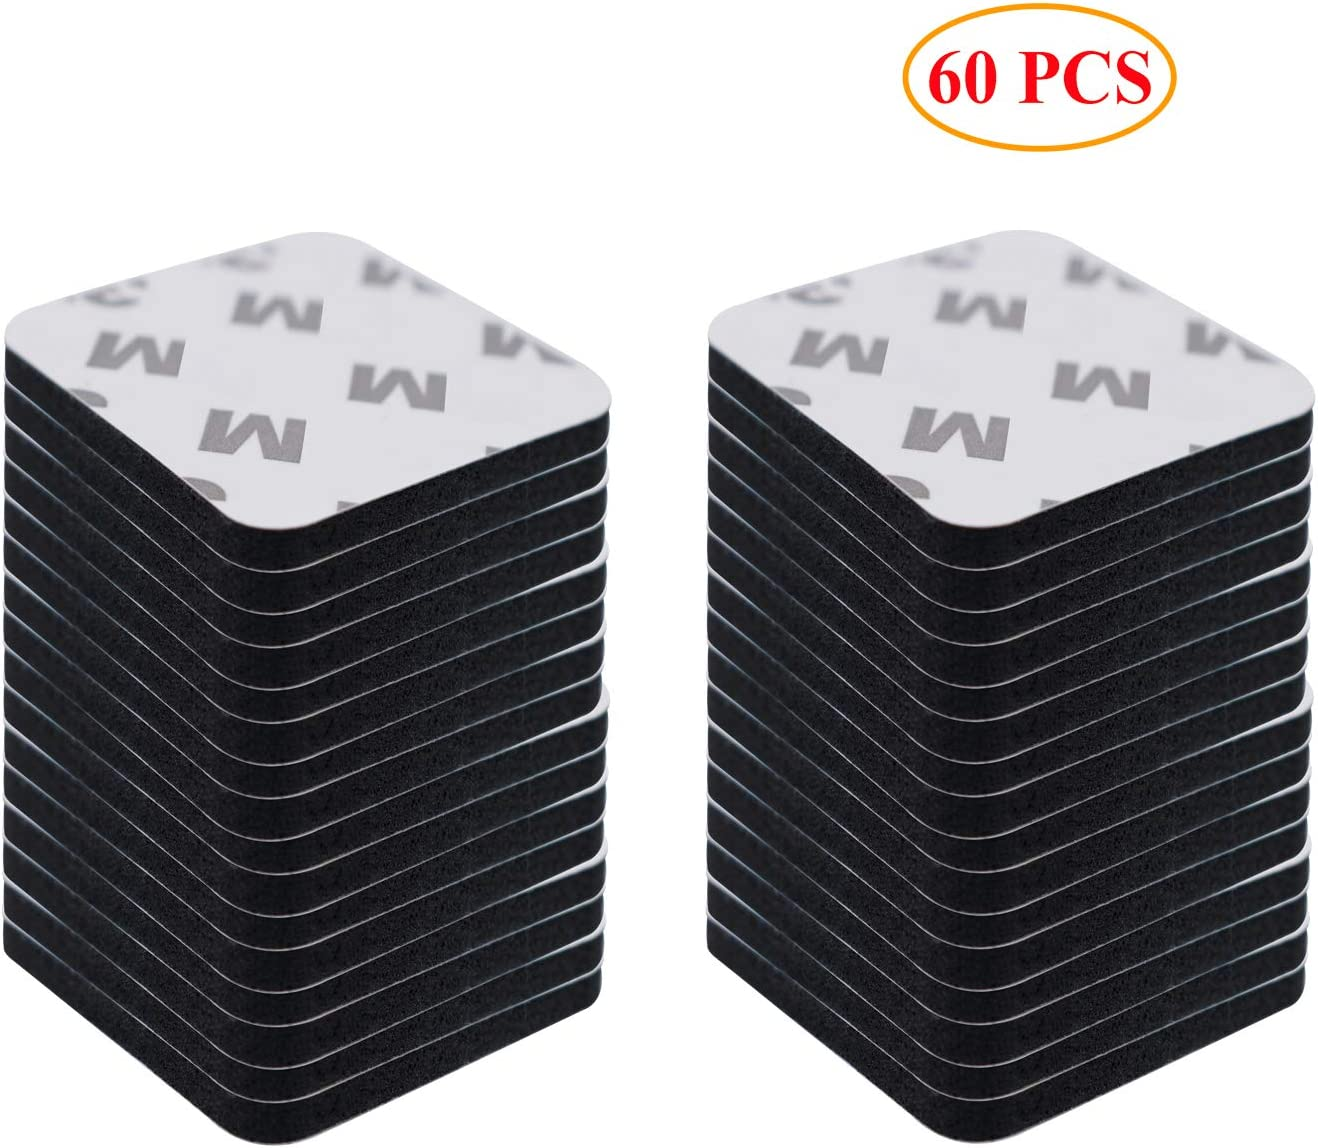 60 PCS Big Size Adhesive Replacement Double-Sided Foam Tape High Bond Dots Conformable Glue Strong Pad Mounting Tape Strong Adhesion for Wall Surface Balloon Leather Rubber Mirror (Black, Square)